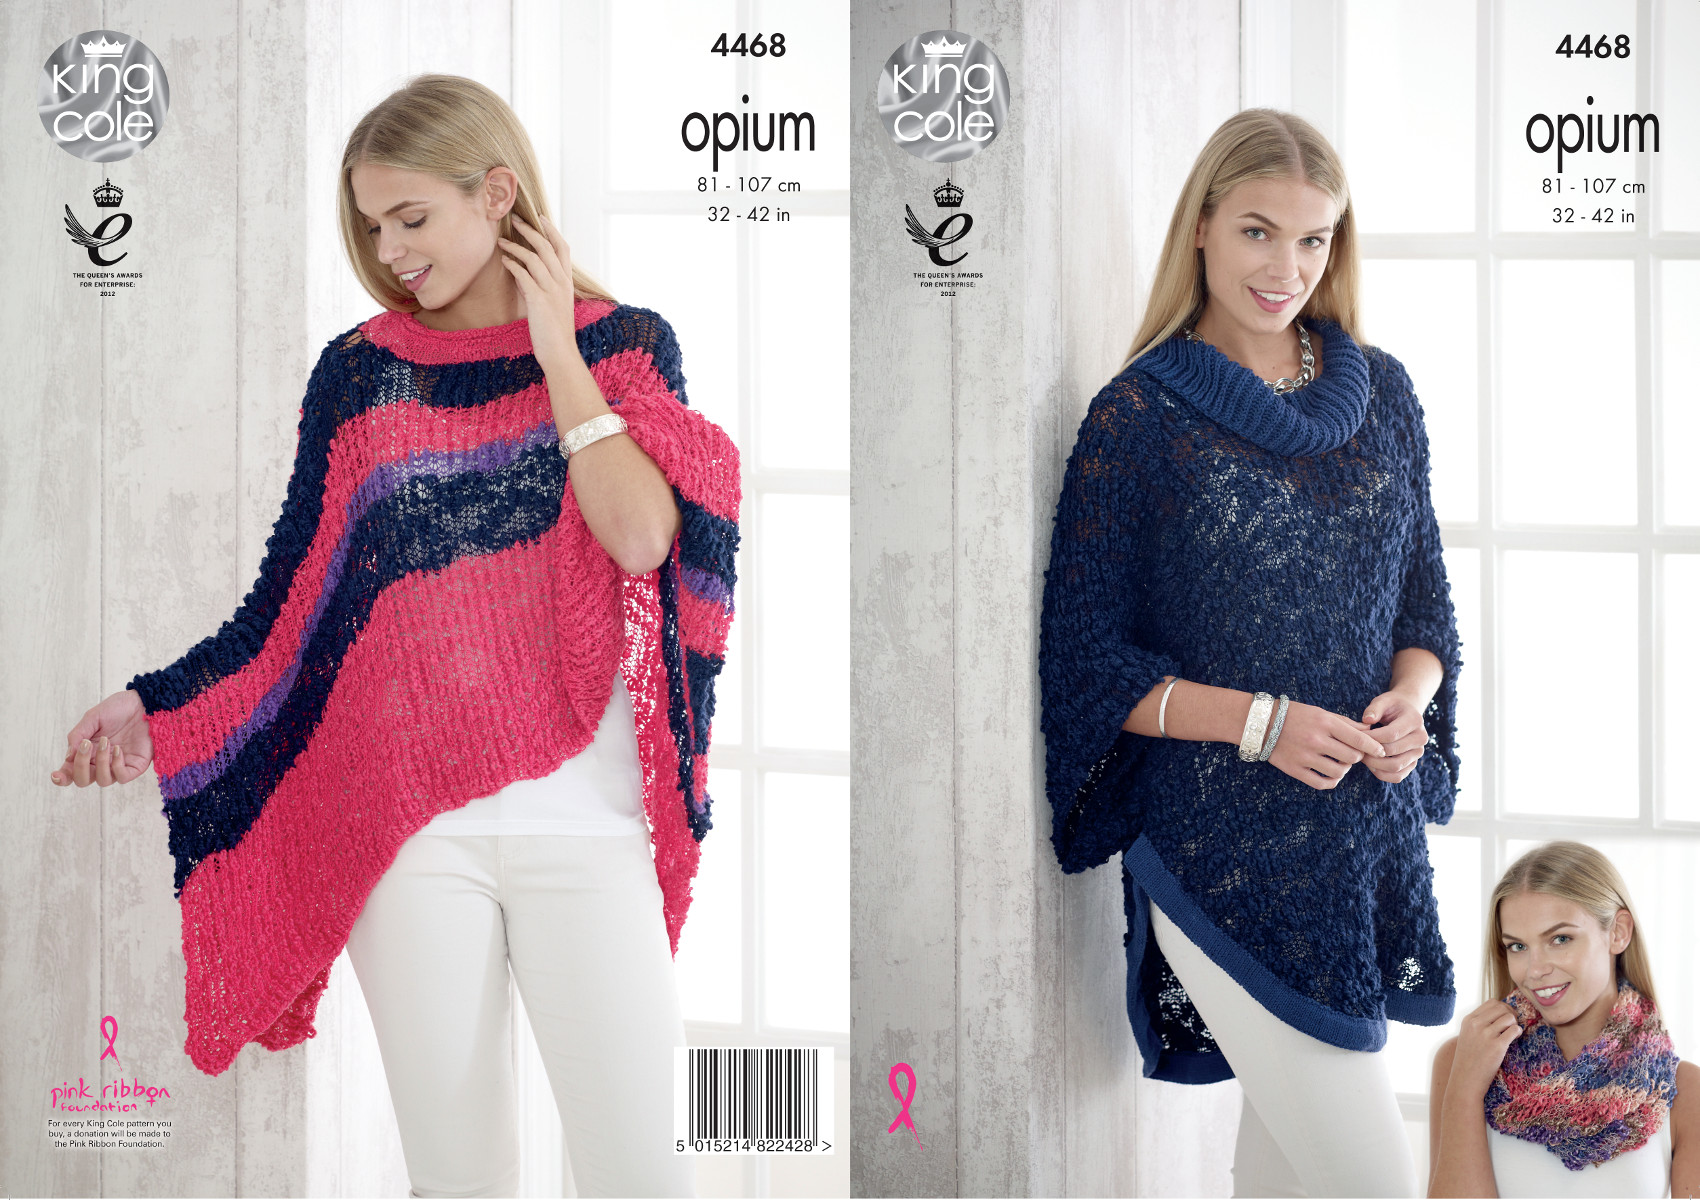 King Cole Womens Opium Knitting Pattern Ladies Cowl Neck Cape Poncho ...